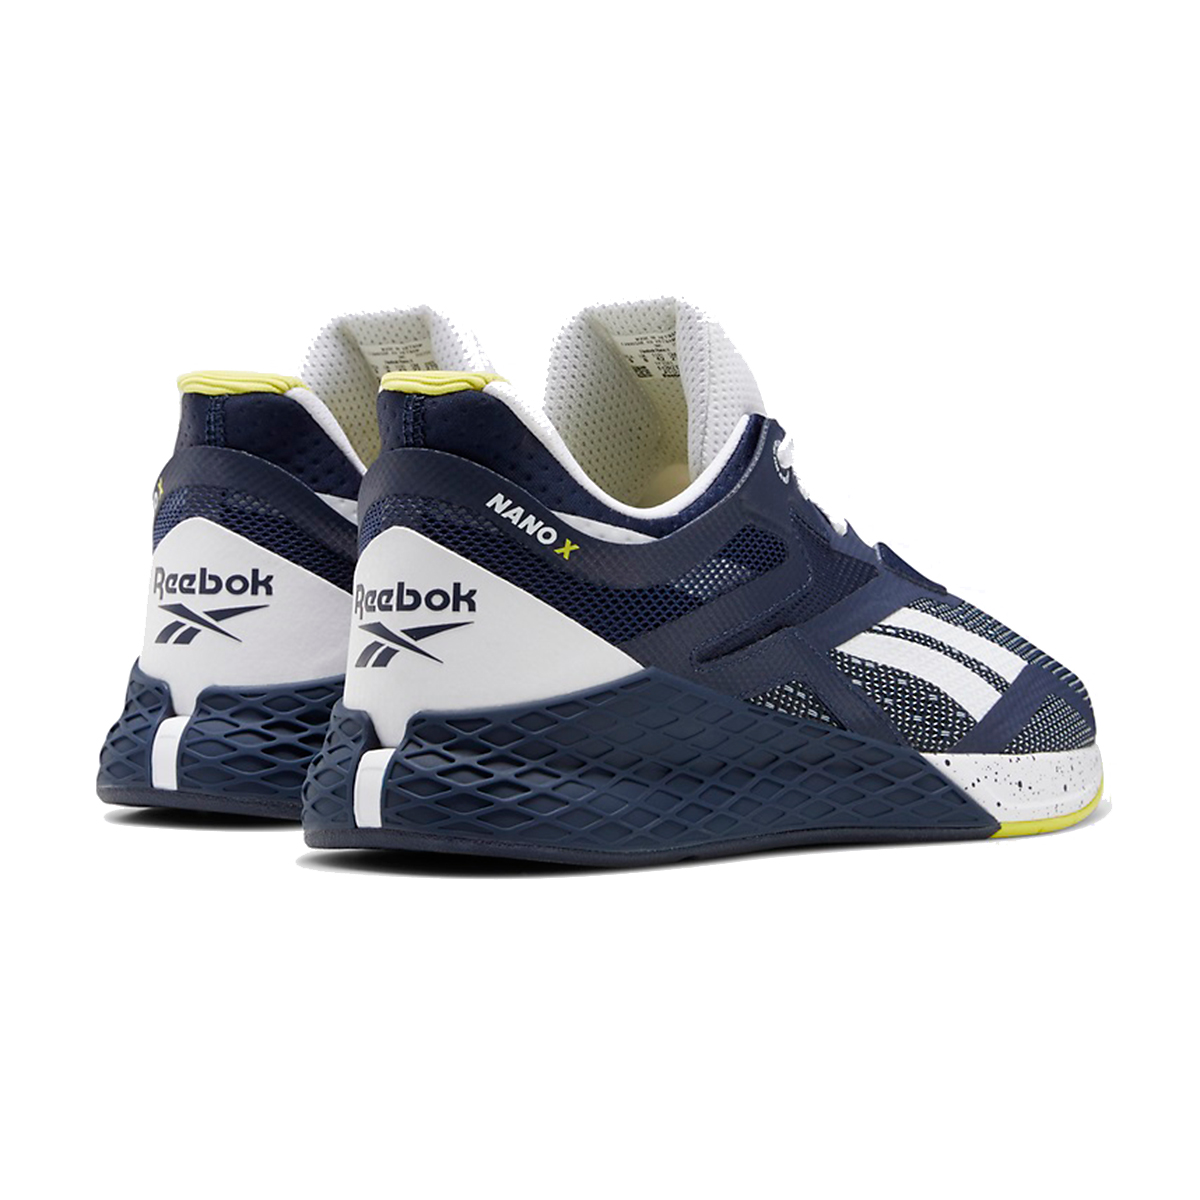 Men's Reebok Nano X Training Shoe - Color: Vector Navy/White/Chartreuse - Size: 6.5 - Width: Regular, Vector Navy/White/Chartreuse, large, image 3